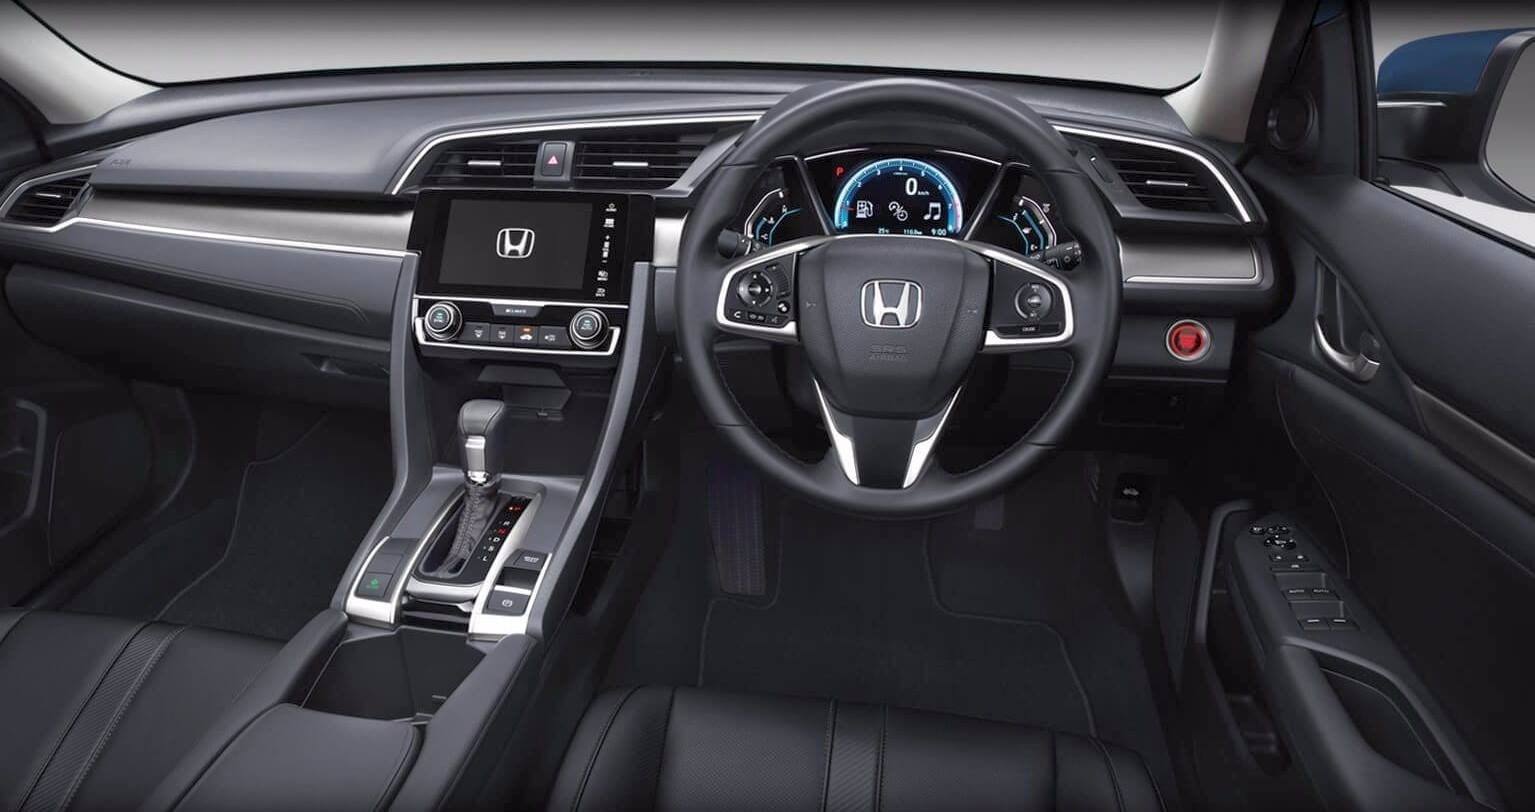 Upcoming New Honda Cars In India In 2017 2018 New Honda Launches